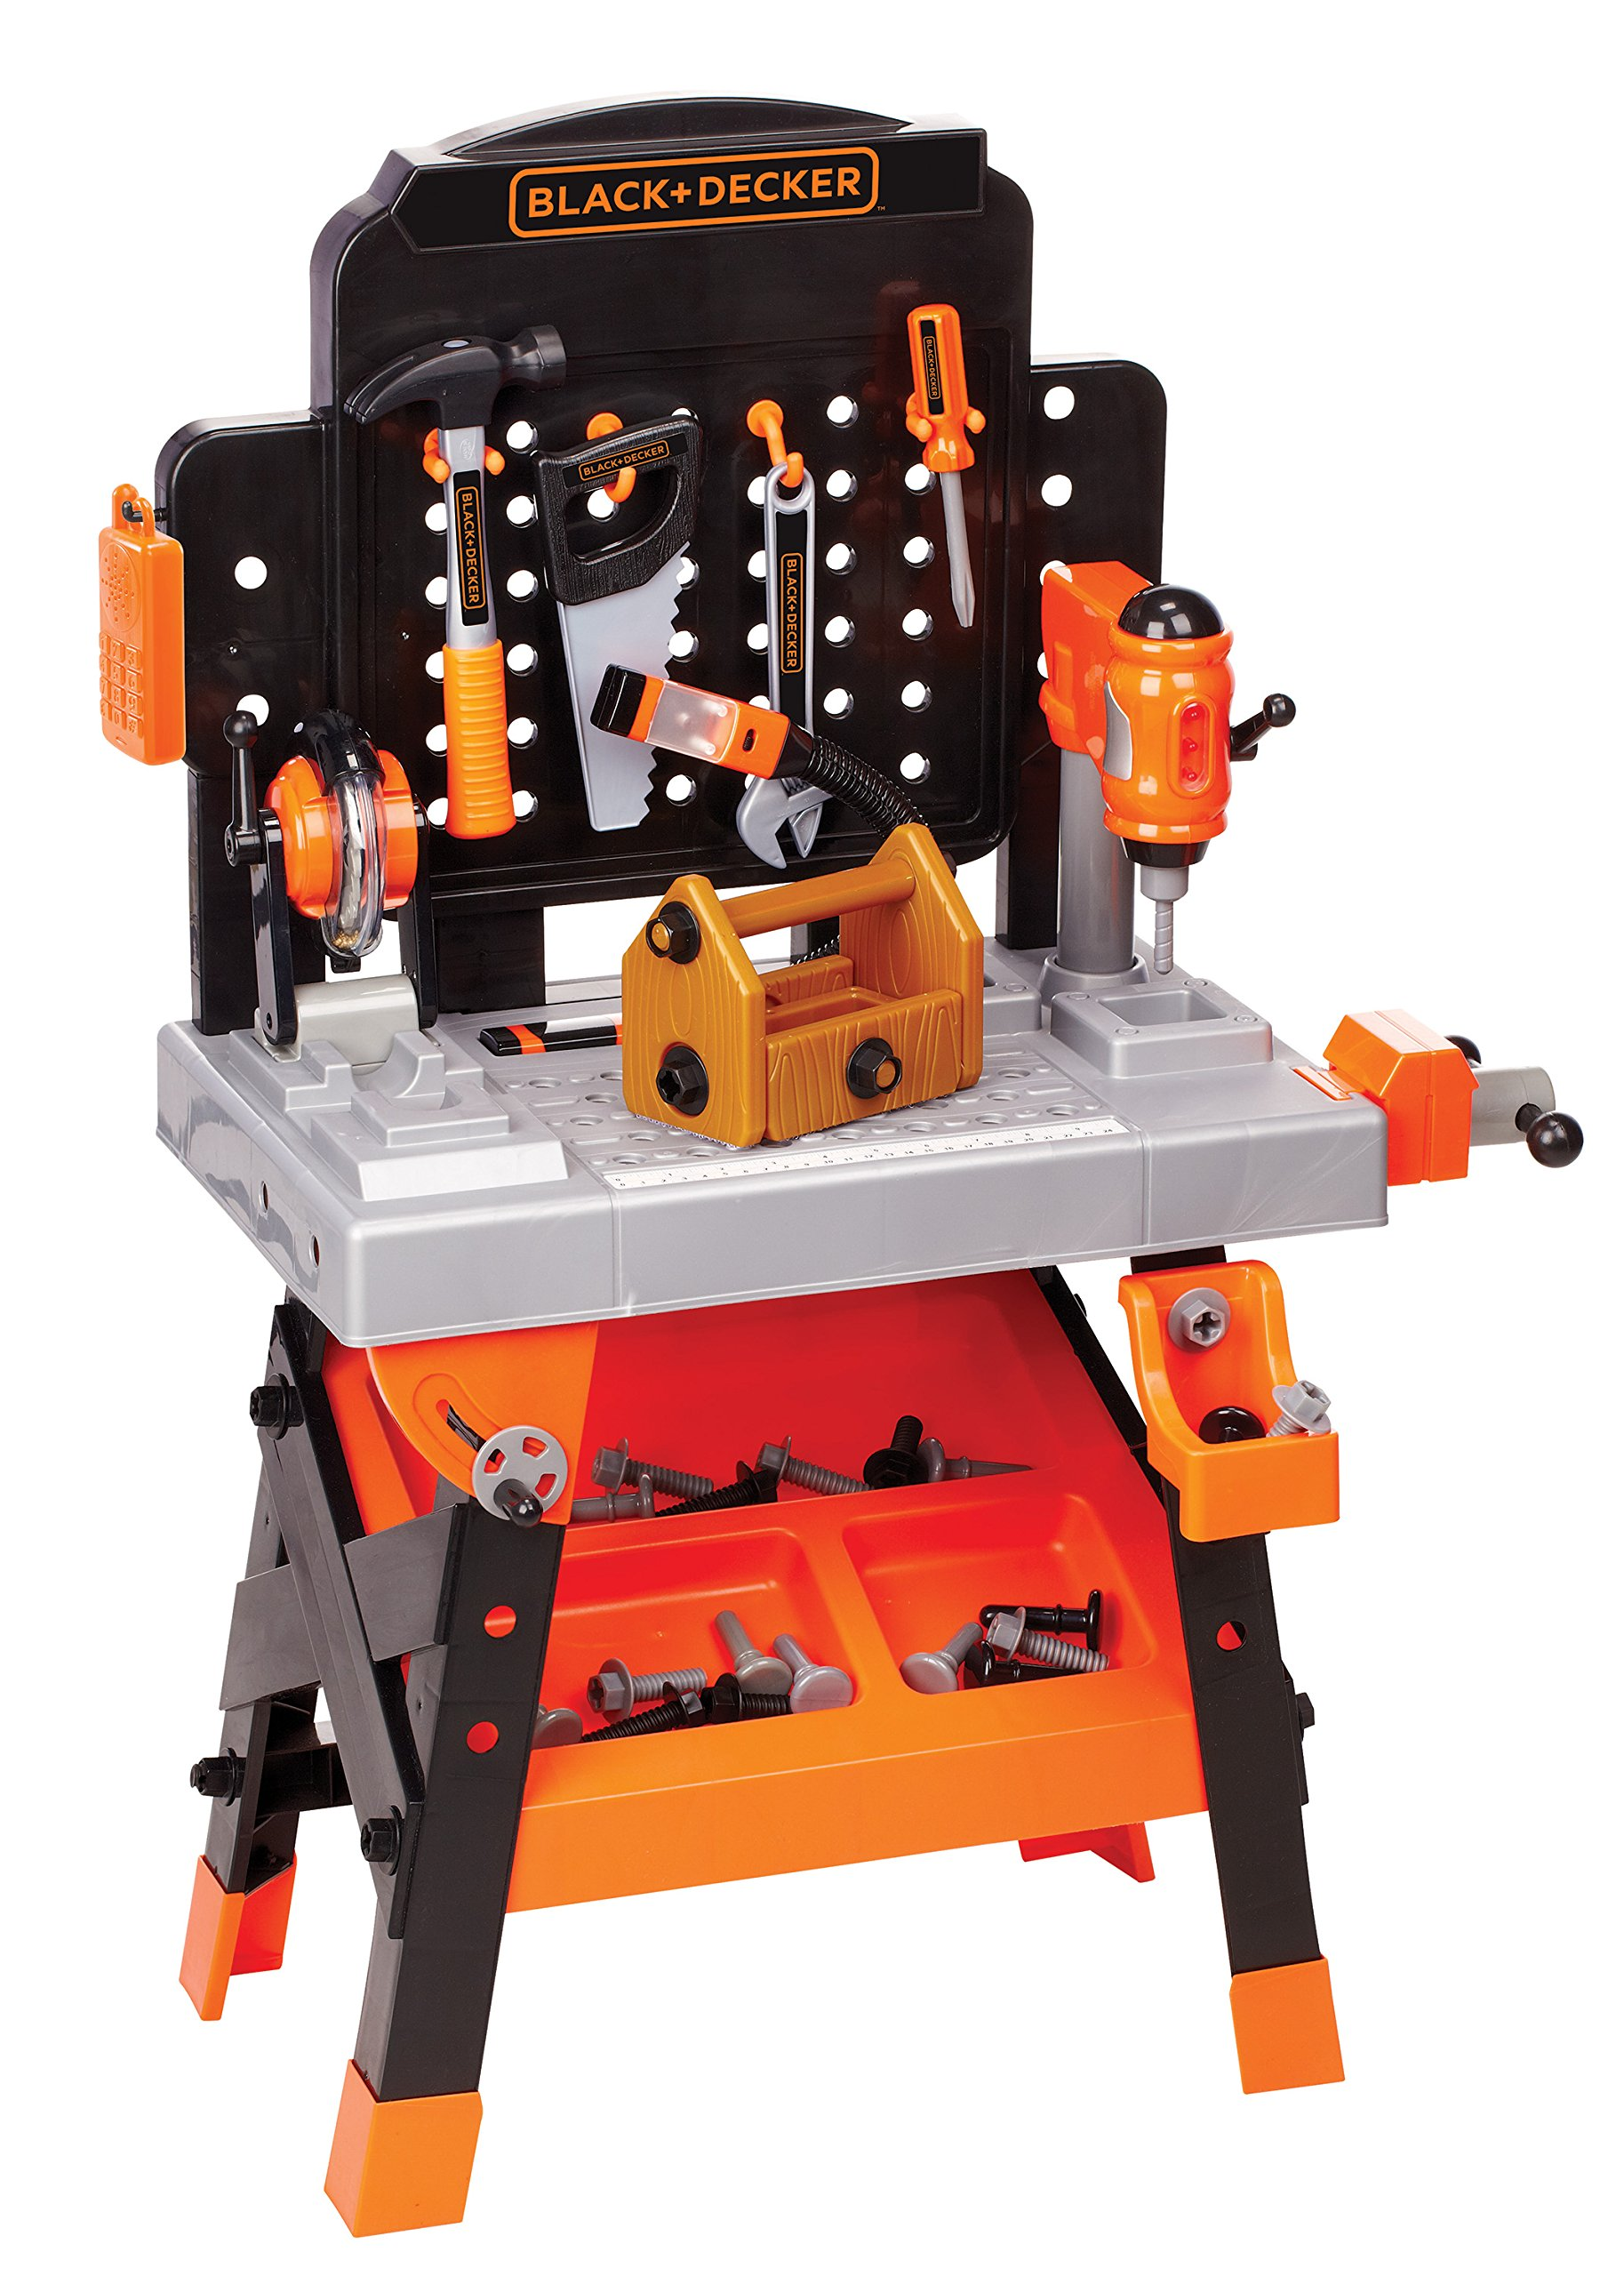 Decker Power Tool Workshop - Play Toy Workbench for Kids with Drill, Miter Saw and Working Flashlight - Build Your Own Tool Box - 75 Realistic Toy Tools and Accessories [Amazon Exclusive] by BLACK + DECKER